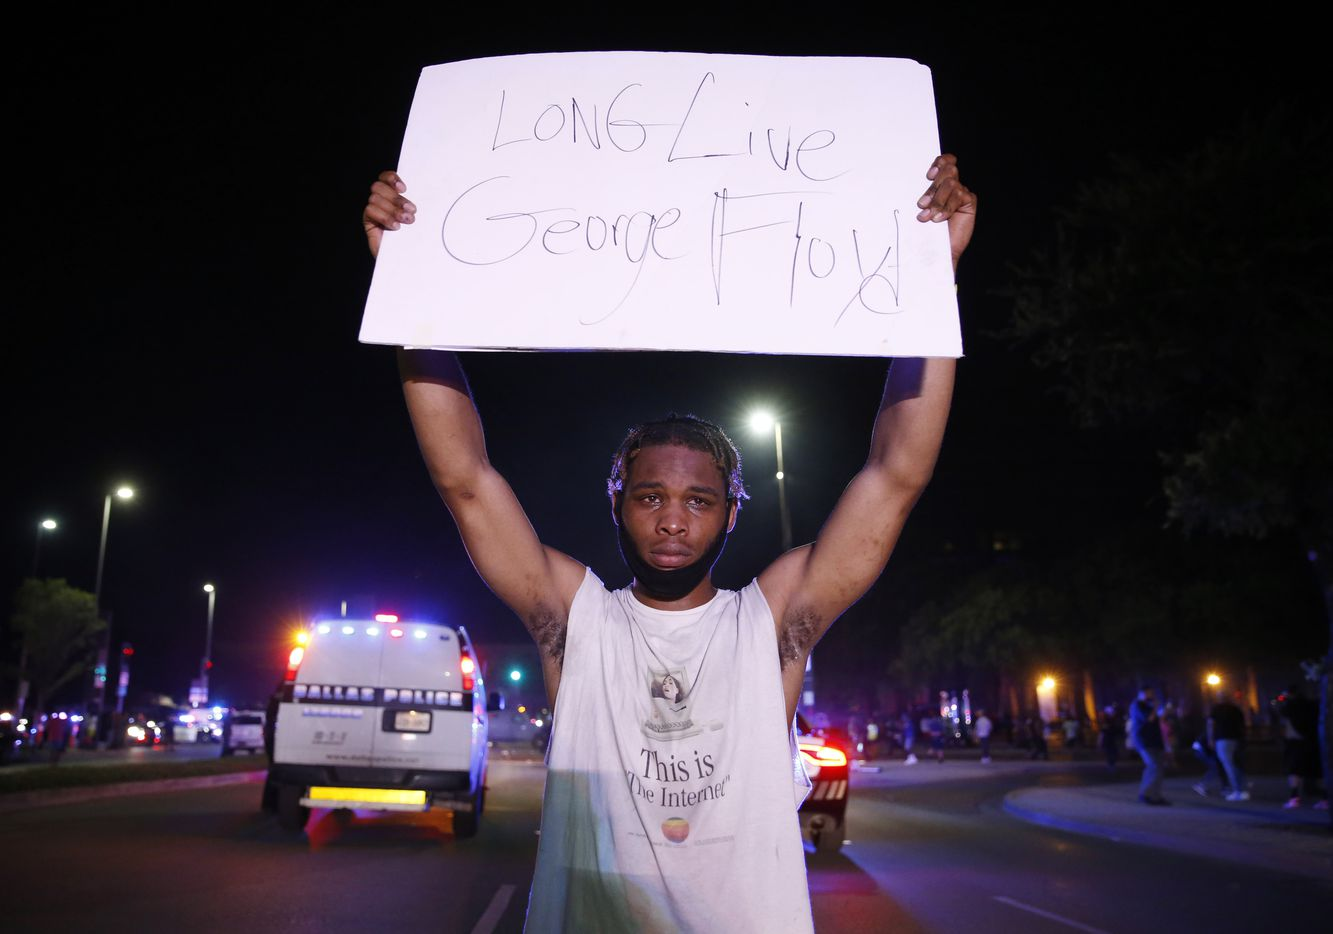 Jordan Spotser of Dallas holds up a sign in front of Dallas police during a demonstration against police brutality in downtown Dallas, on Friday, May 29, 2020. George Floyd died in police custody in Minneapolis on May 25.